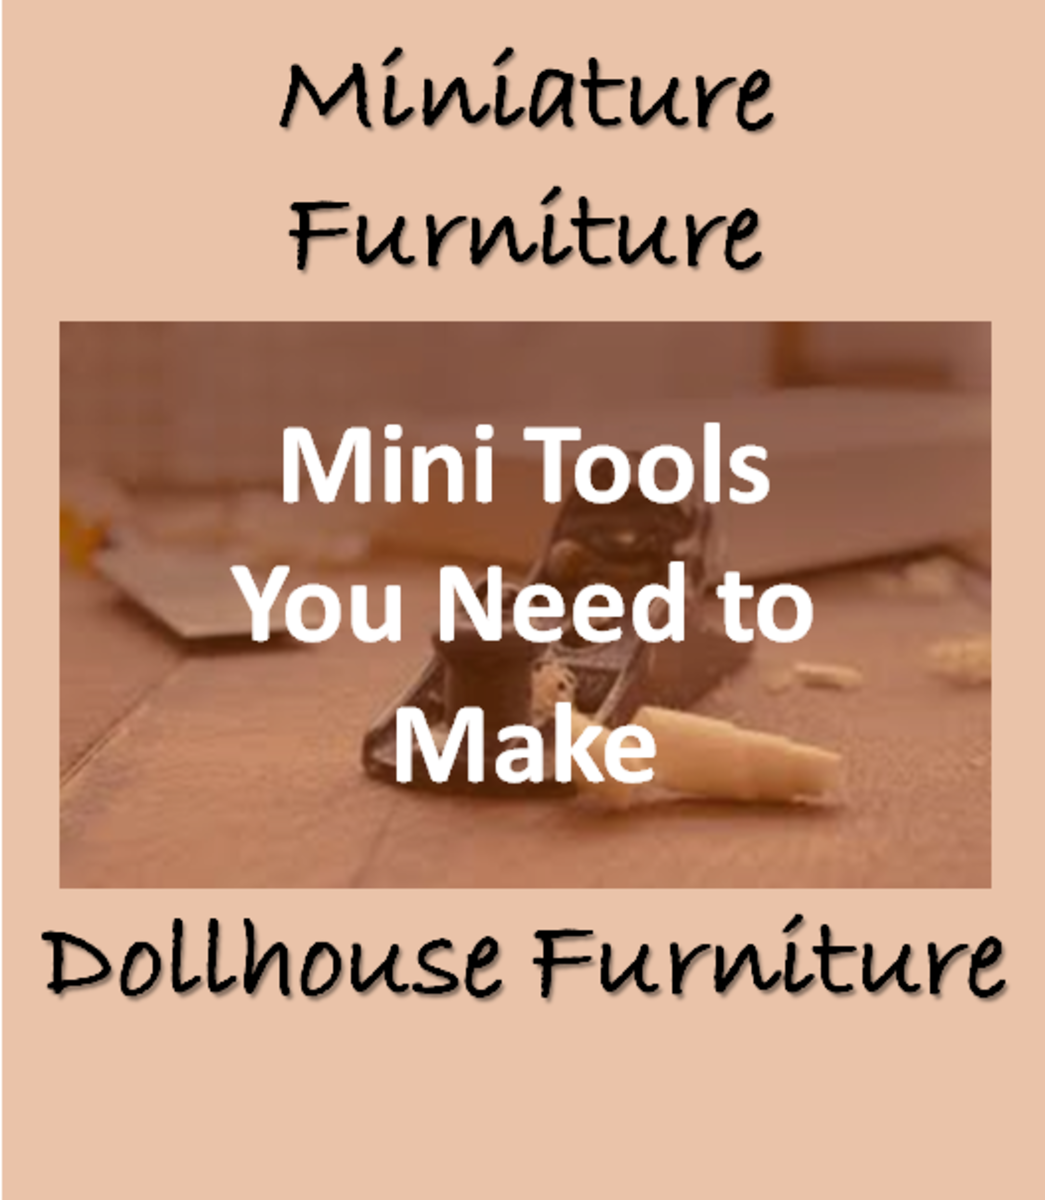 Tools You Need to Make Dollhouse Miniature Furniture